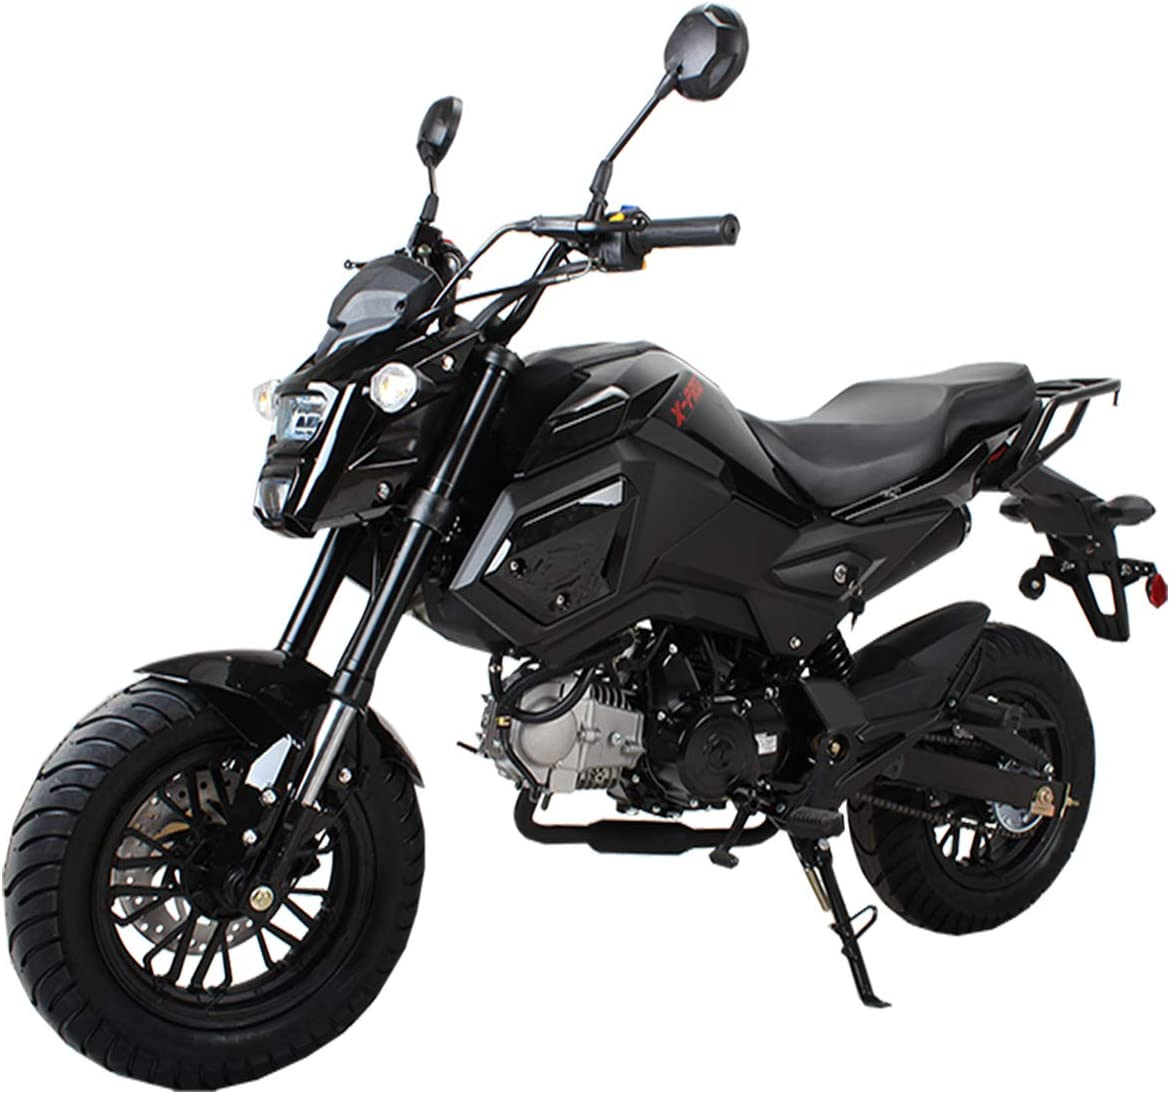 X-PRO 125cc Vader Adult Motorcycle Gas Motorcycle Dirt Motorcycle Street Bike Motorcycle Bike-Black